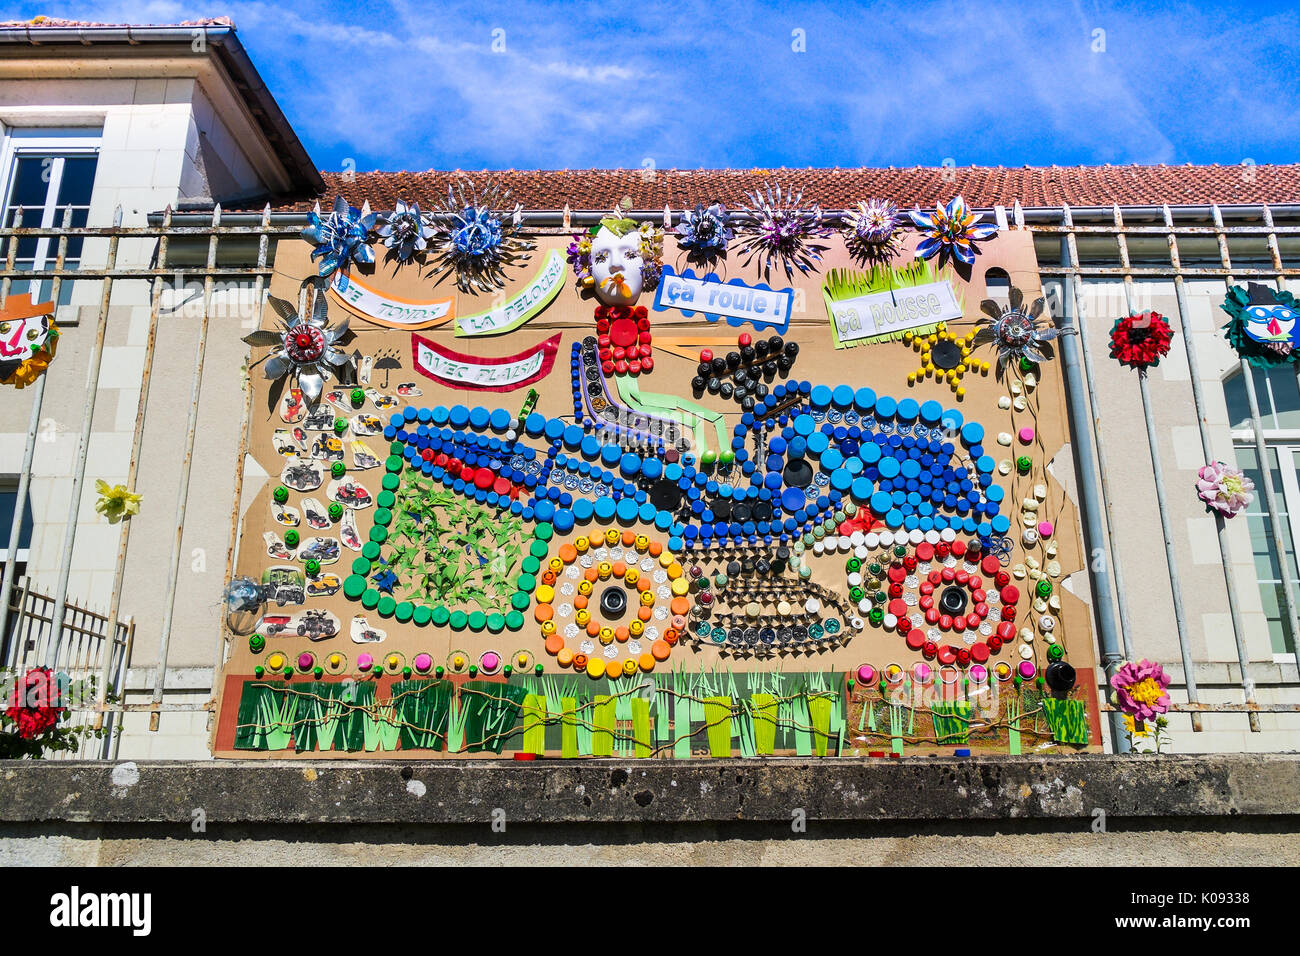 Motor mower picture / collage made by schoolchildren from recycled bottle tops, France. - Stock Image